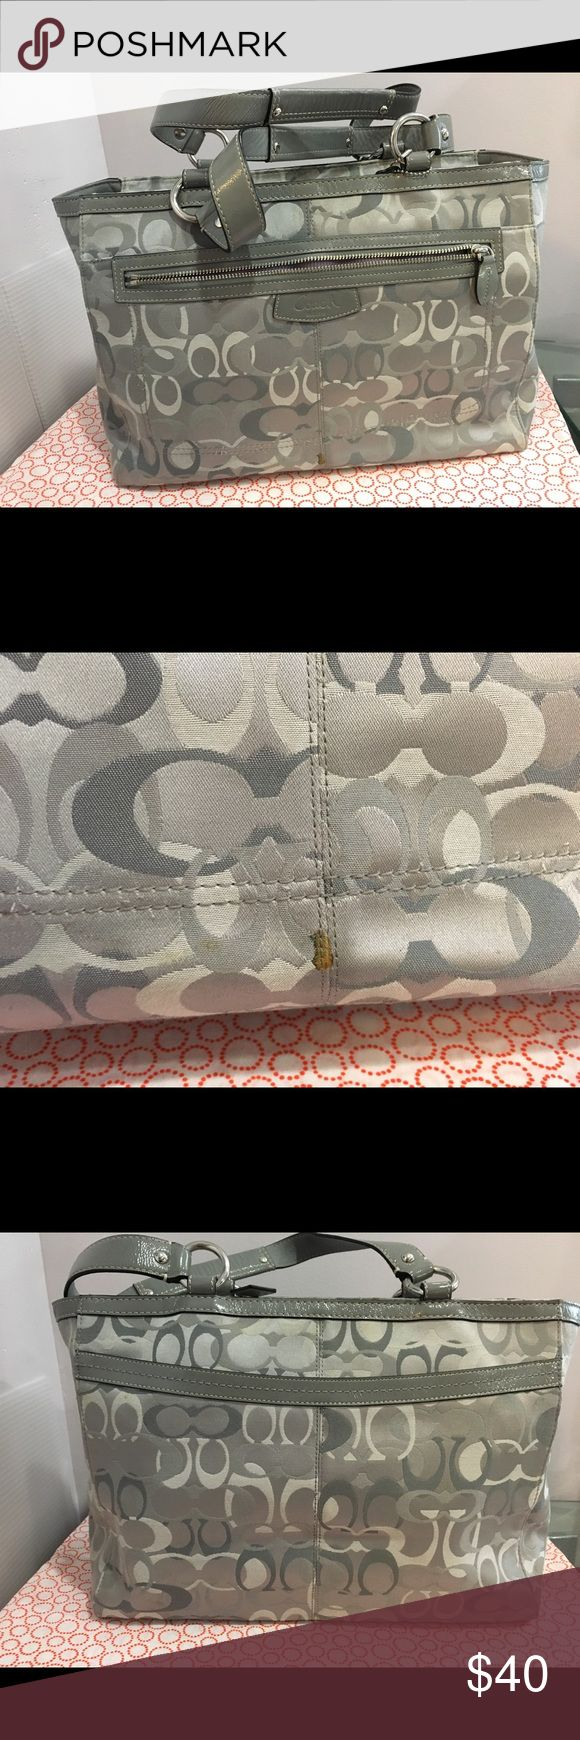 Coach Monogram Large Grey Purse Lightly used. It does have small stains but nothing you can't get off with Purse cleaner. Beautiful clean lavender interior. All functional zippers. It's a pretty good size. Can fit a Columbia shoe box size 10. Great bag for class! Coach Bags Totes